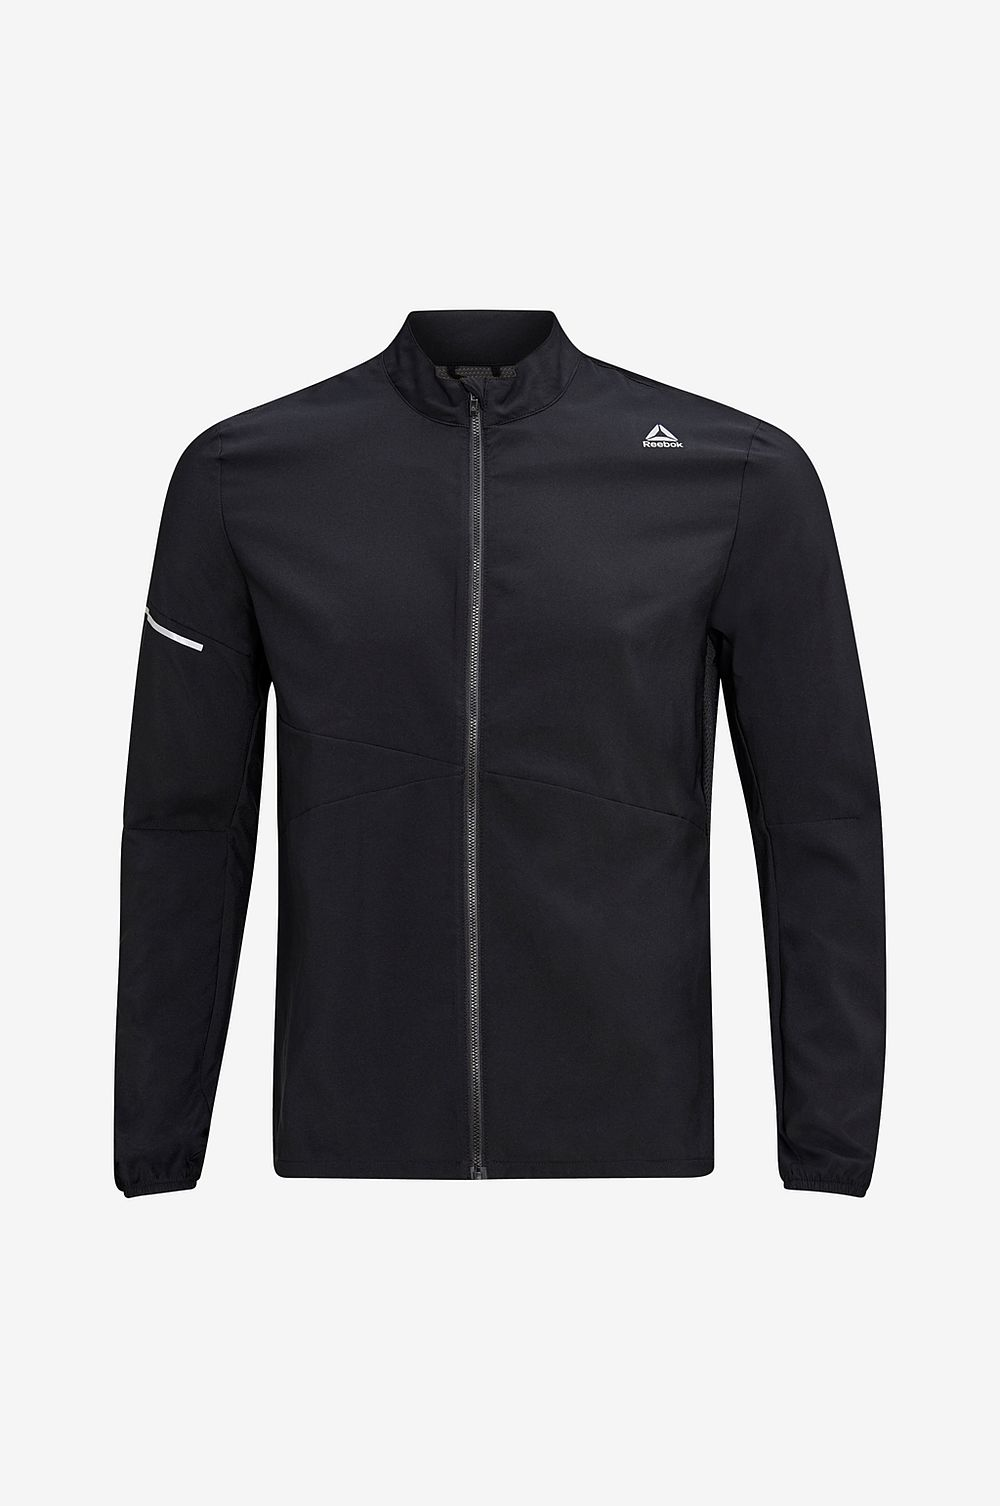 Reebok Performance Löparjacka Run Essentials Woven Jacket - Svart - Herr